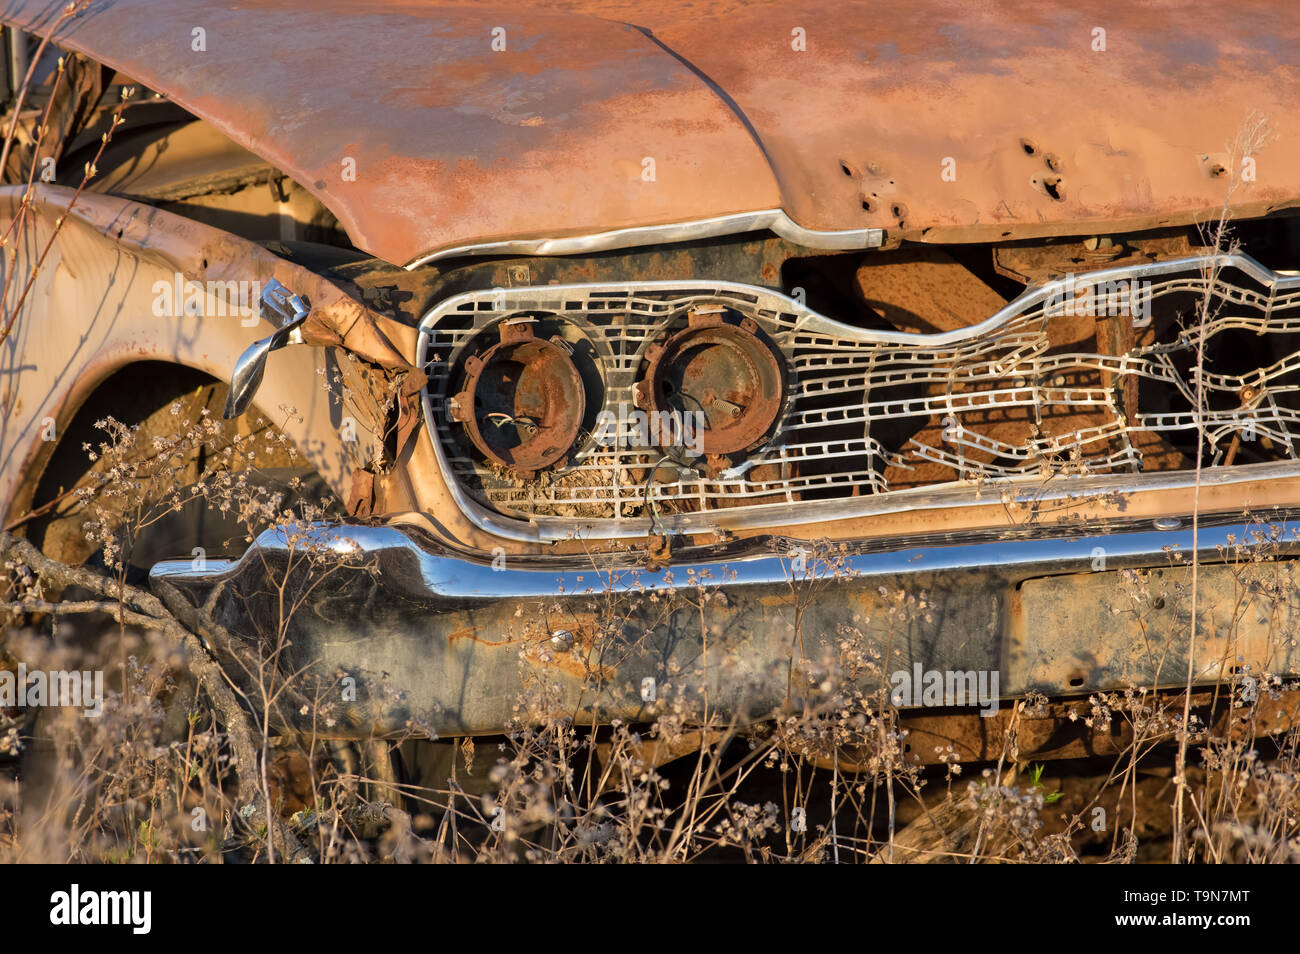 Old vintage rusted out car's headlight / grill area - left in the middle of no where forest / field in rural Wisconsin - golden light at sunset - Stock Image